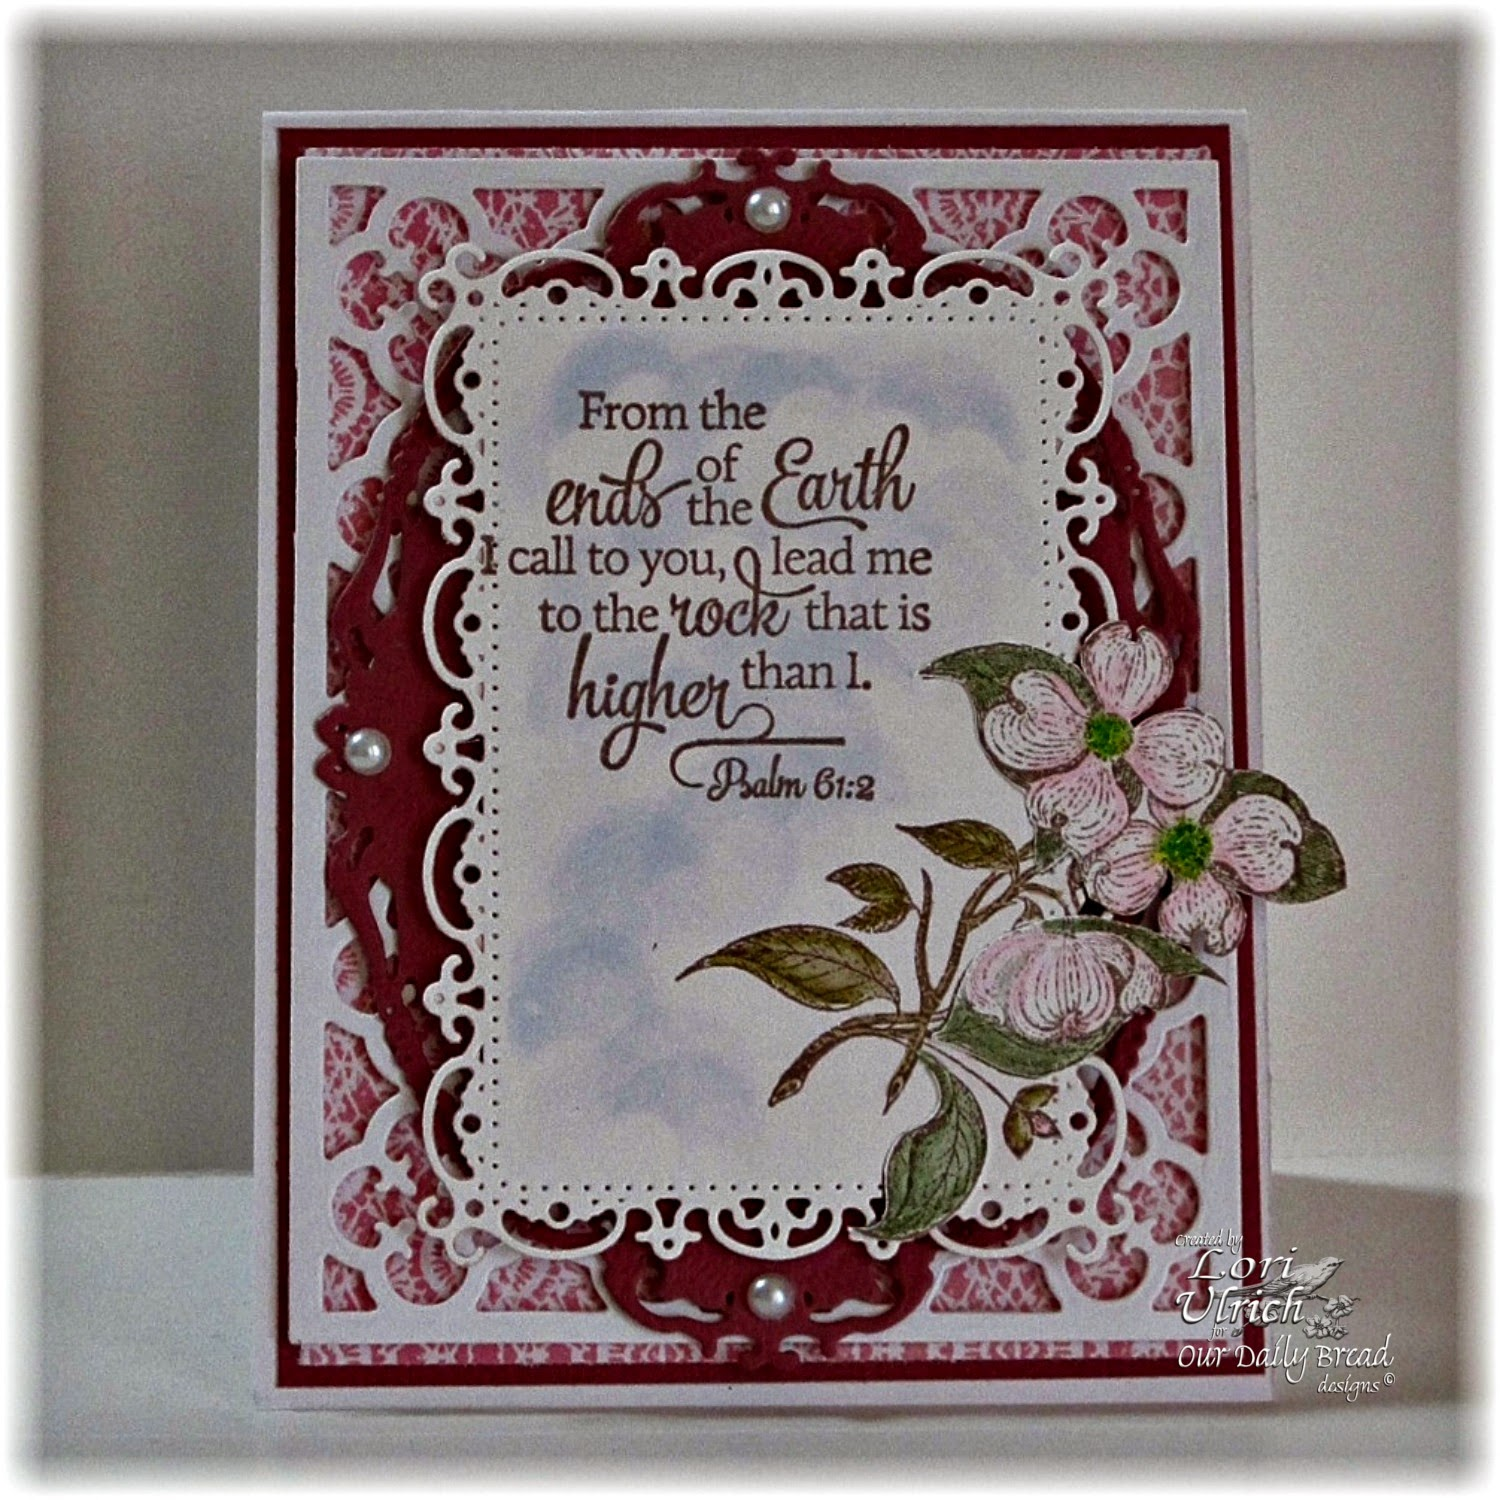 Stamps - Our Daily Bread Designs Scripture Collection 12, ODBD Custom Quatrefoil Pattern Die, ODBD Heart and Soul Paper Collection, Grow in Grace